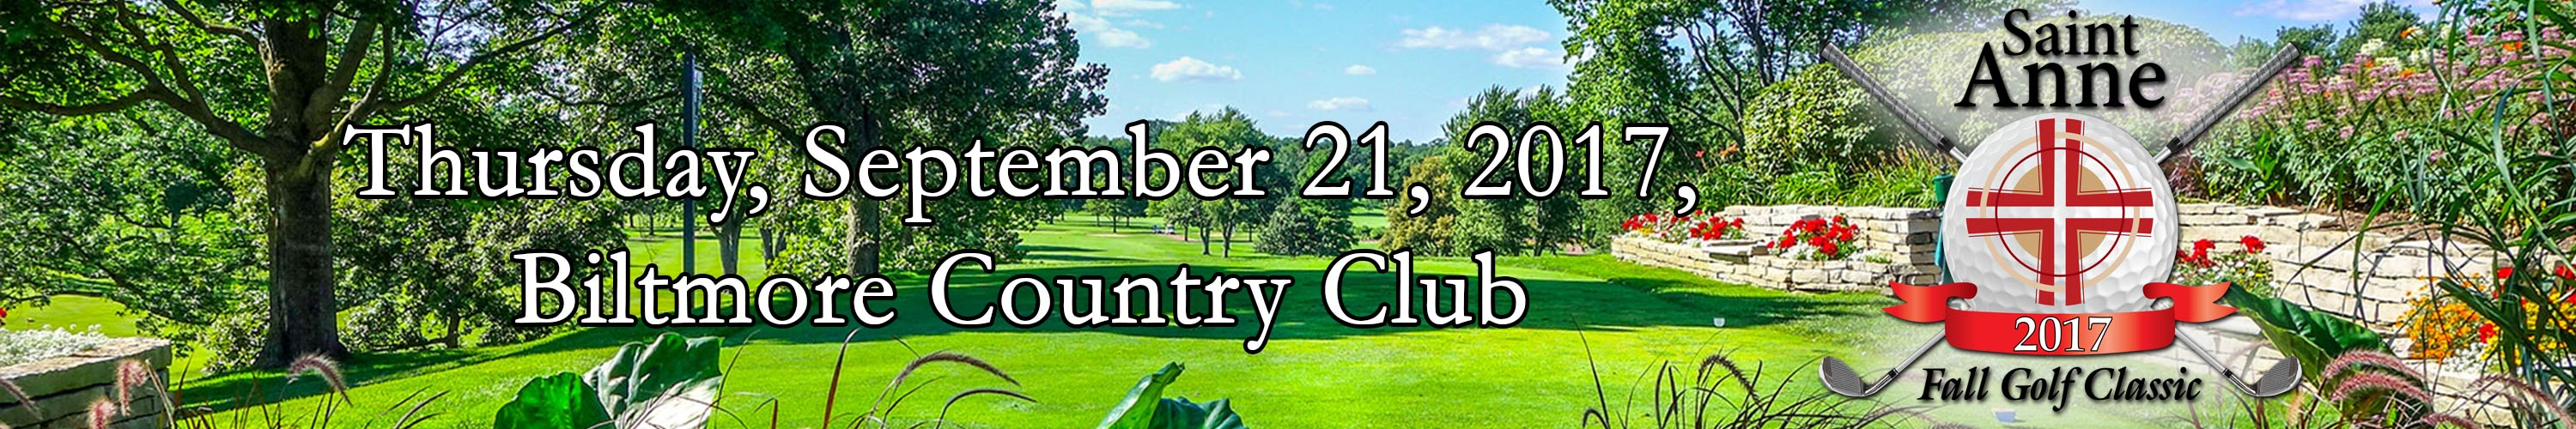 Golf-Outing-Banner-2017-1